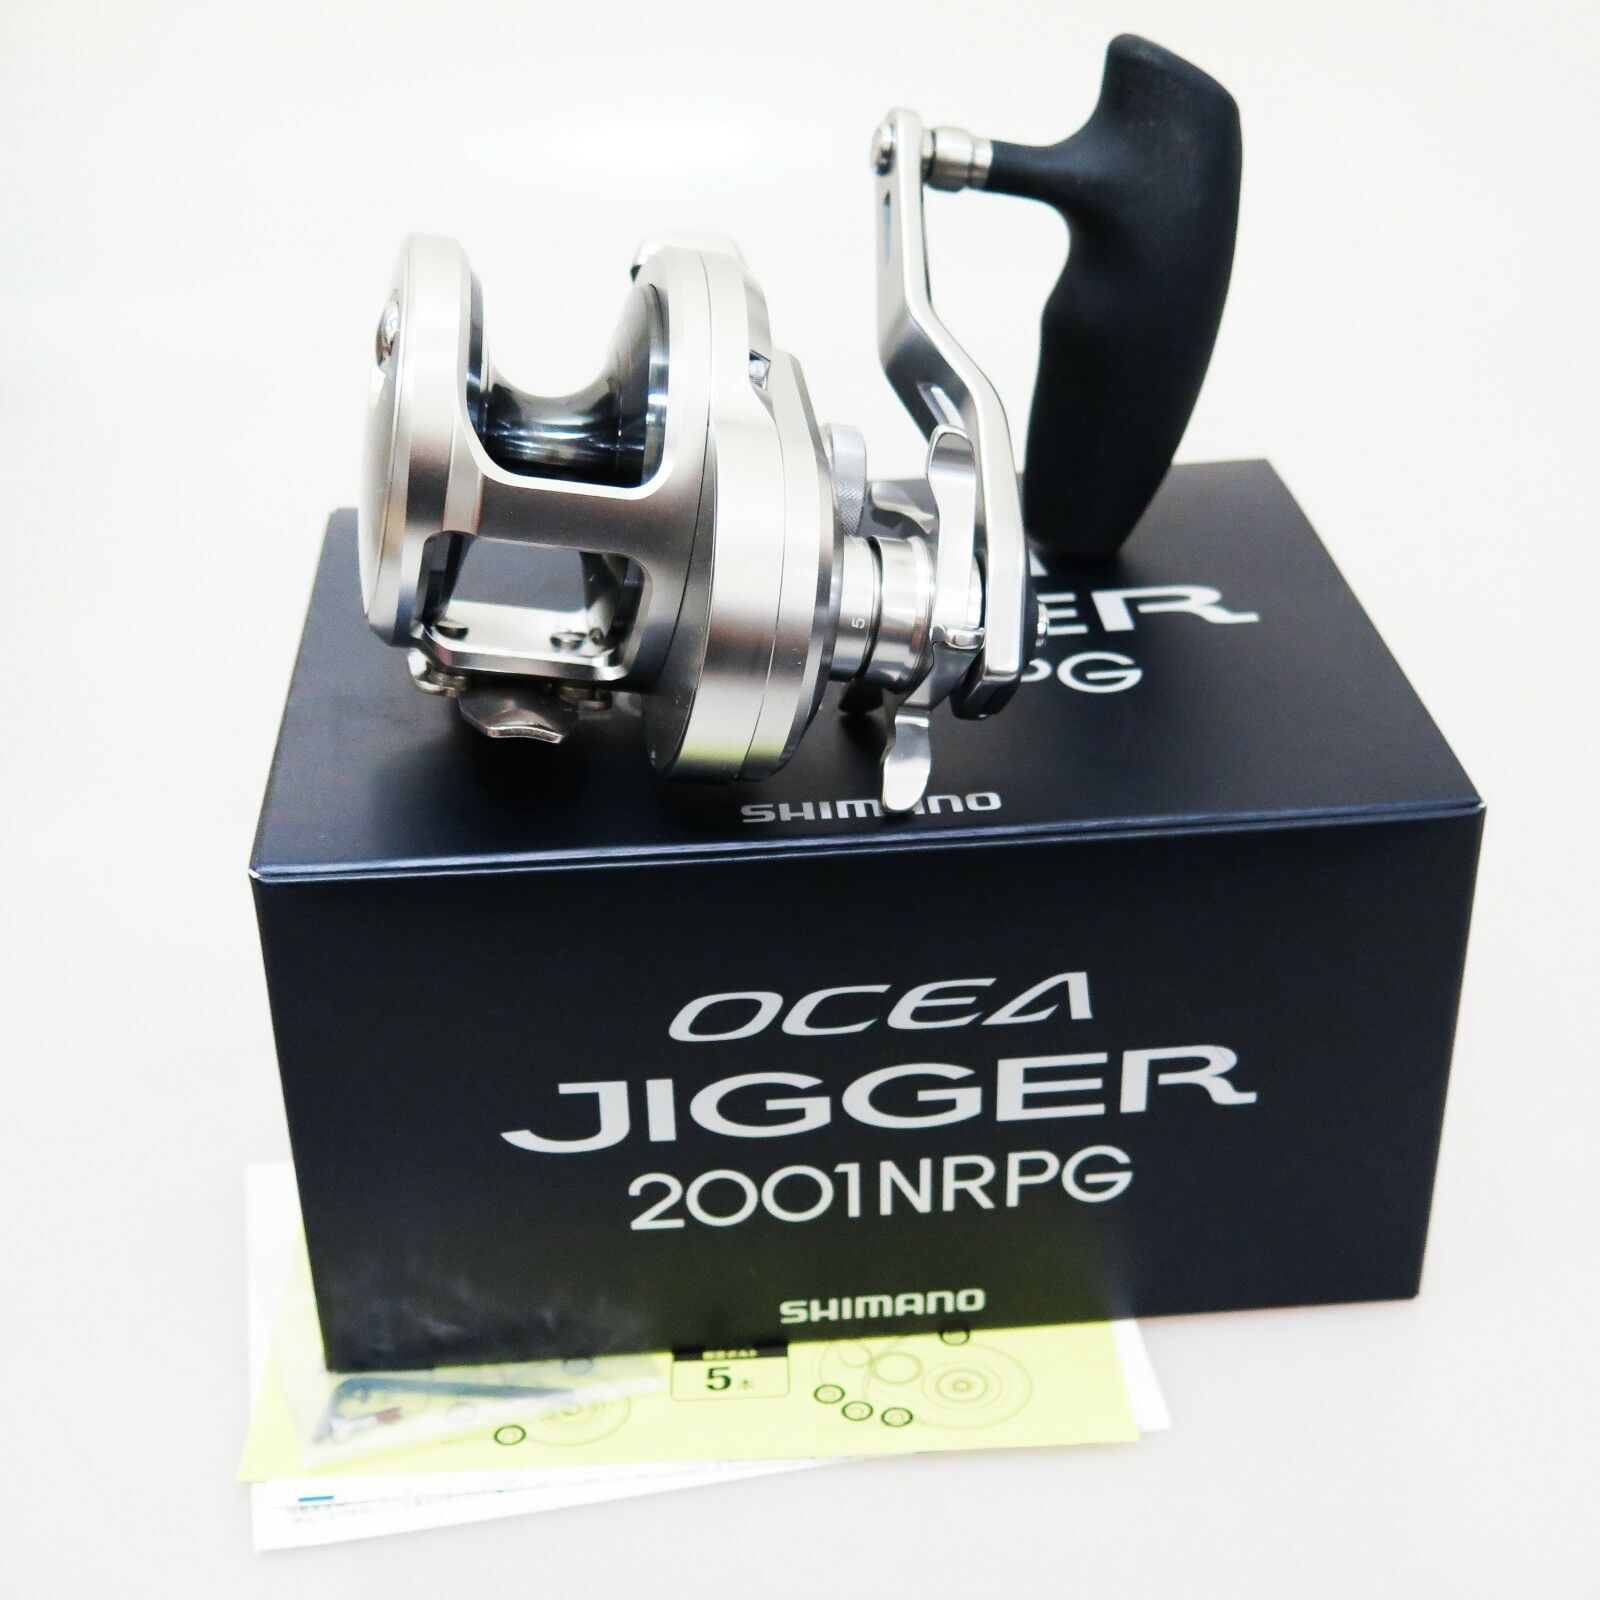 2017 NEW SHIMANO Ocea Jigger 2001NRPG reel MADE JAPAN Fedex Priority 2day to Us